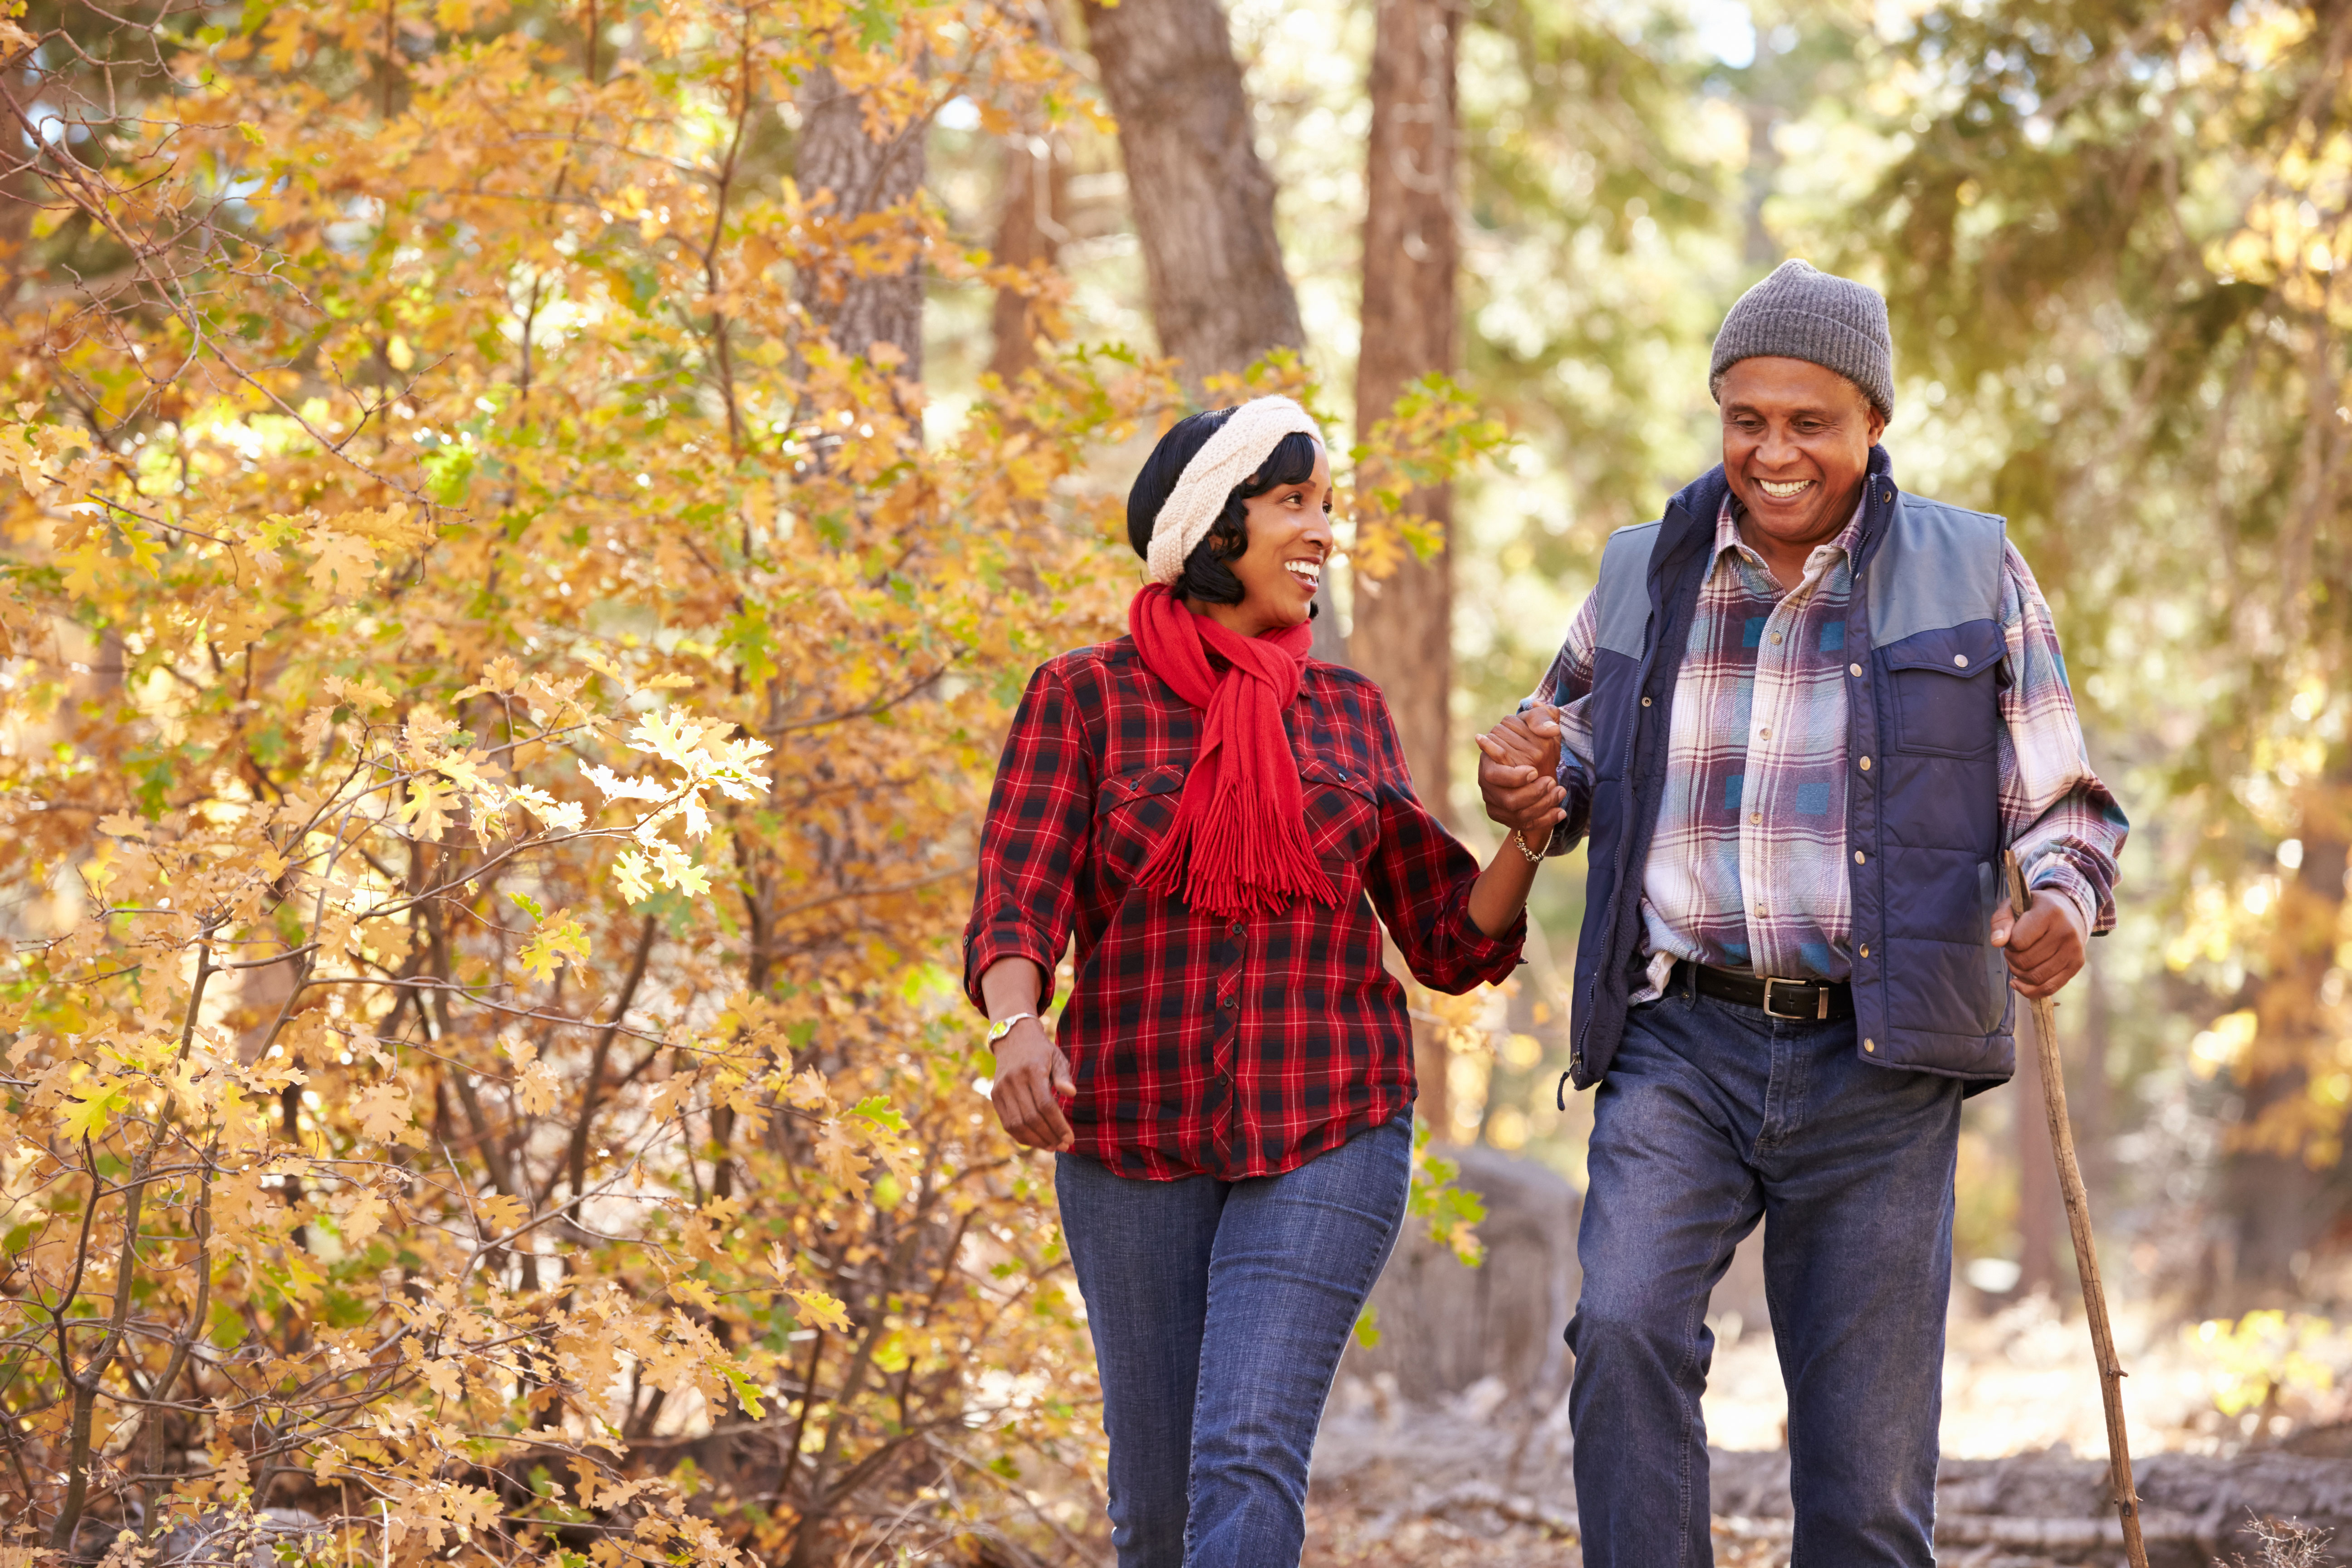 Couple walking through forest with fall foliage surrounding.